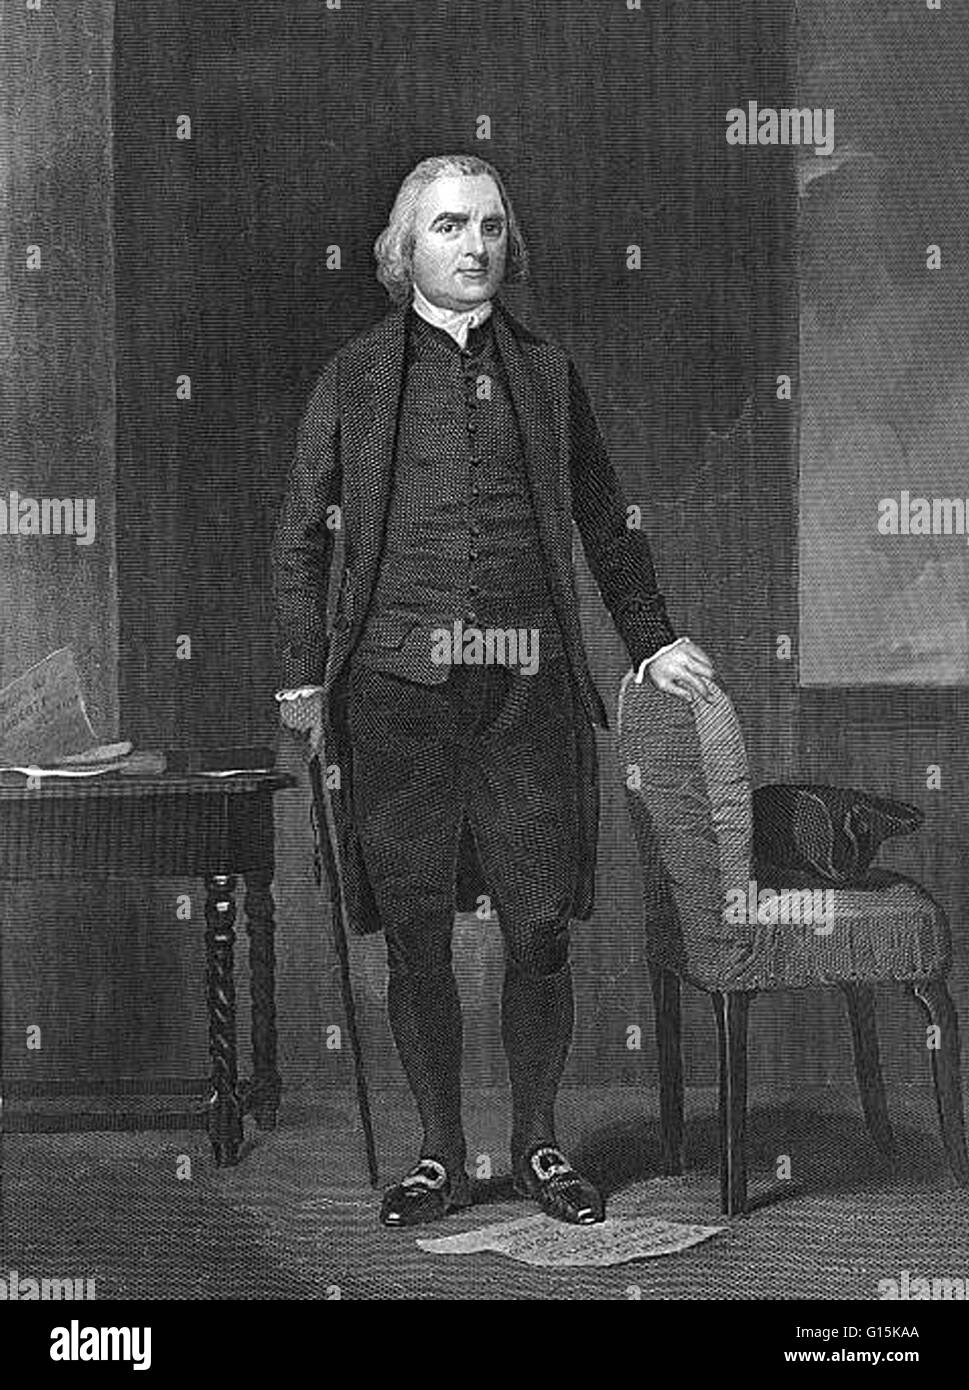 Samuel Adams (1722 -1803) was an American statesman, political philosopher,  and one of the Founding Fathers of the United States.